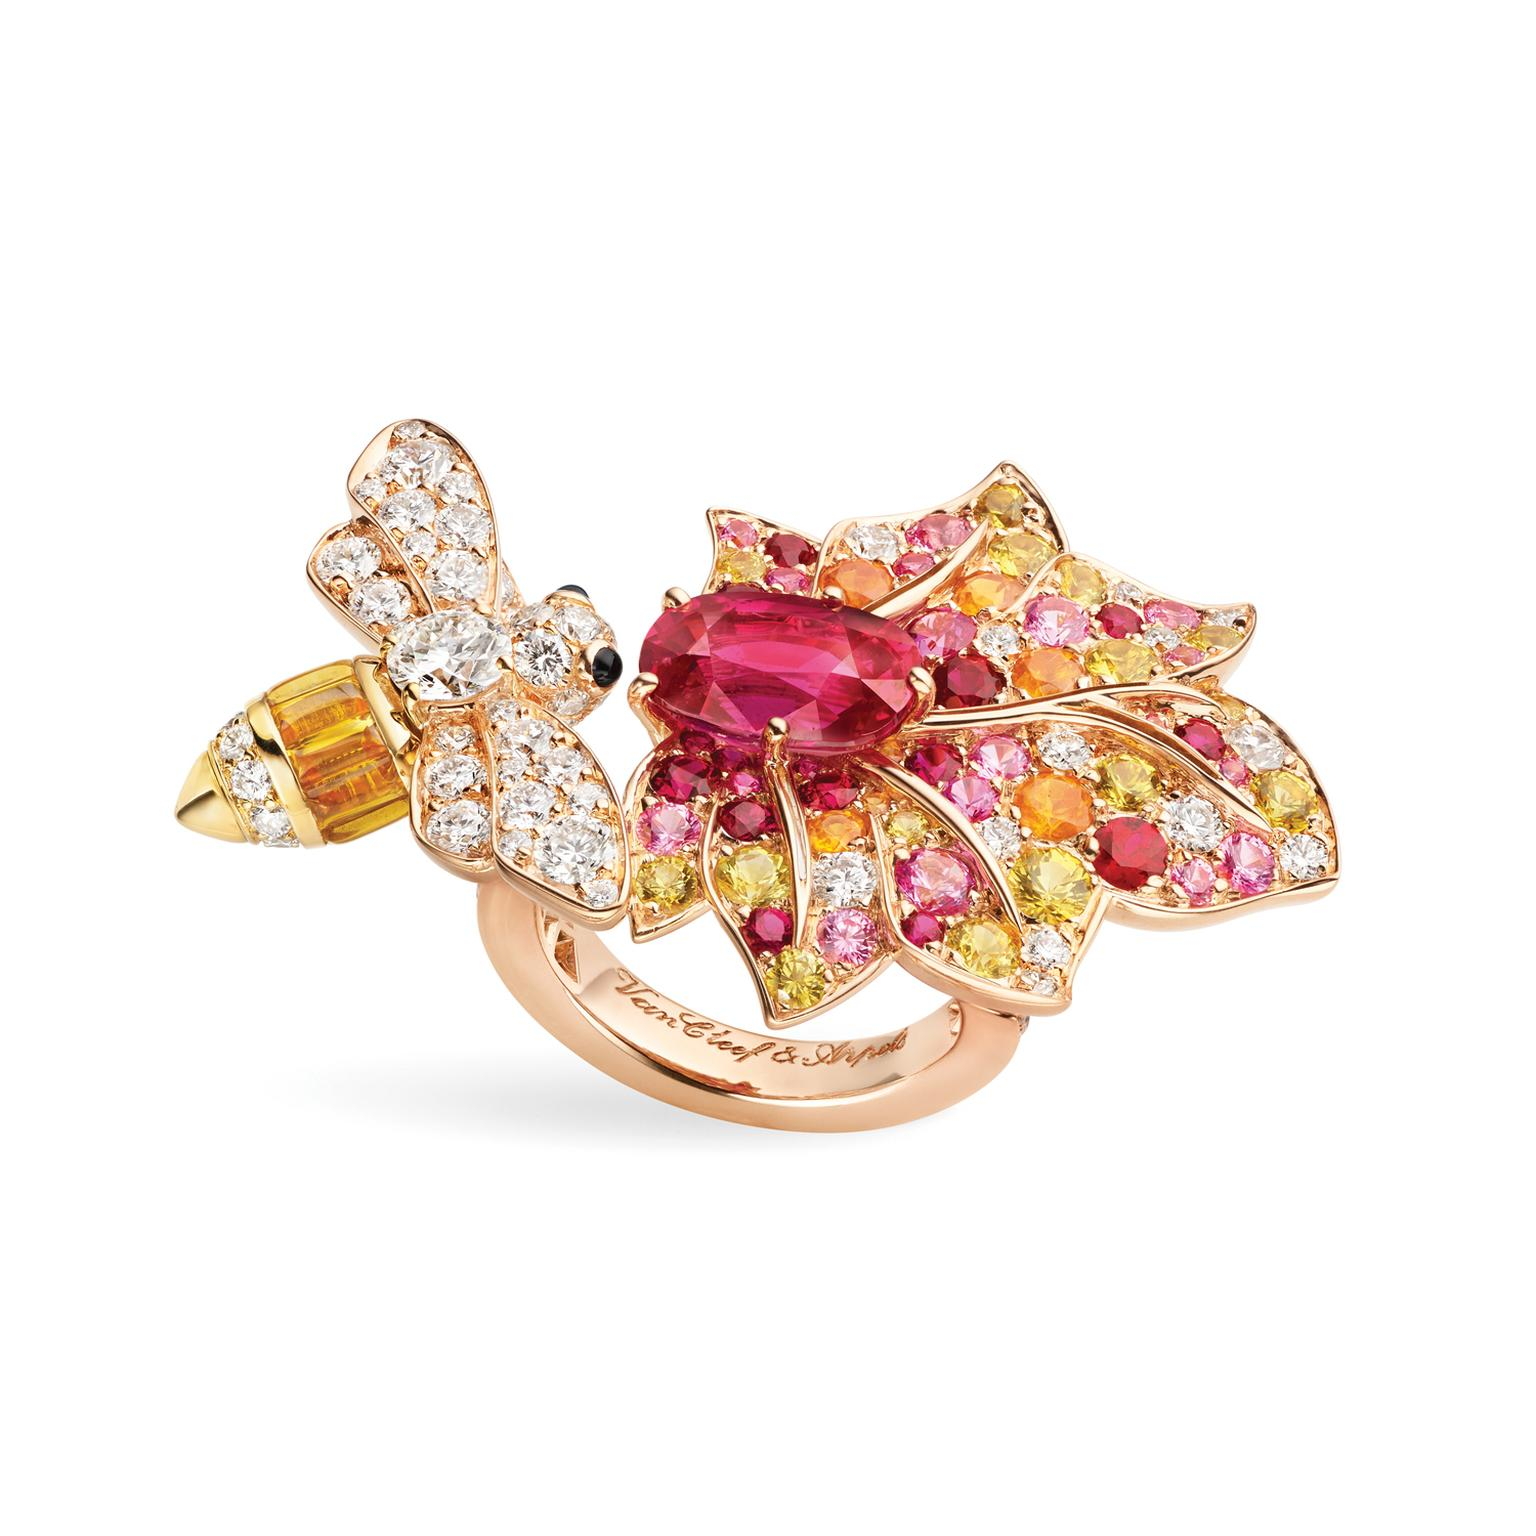 Van Cleef & Arpels Le Secret Believe in Luck Between the Finger ring